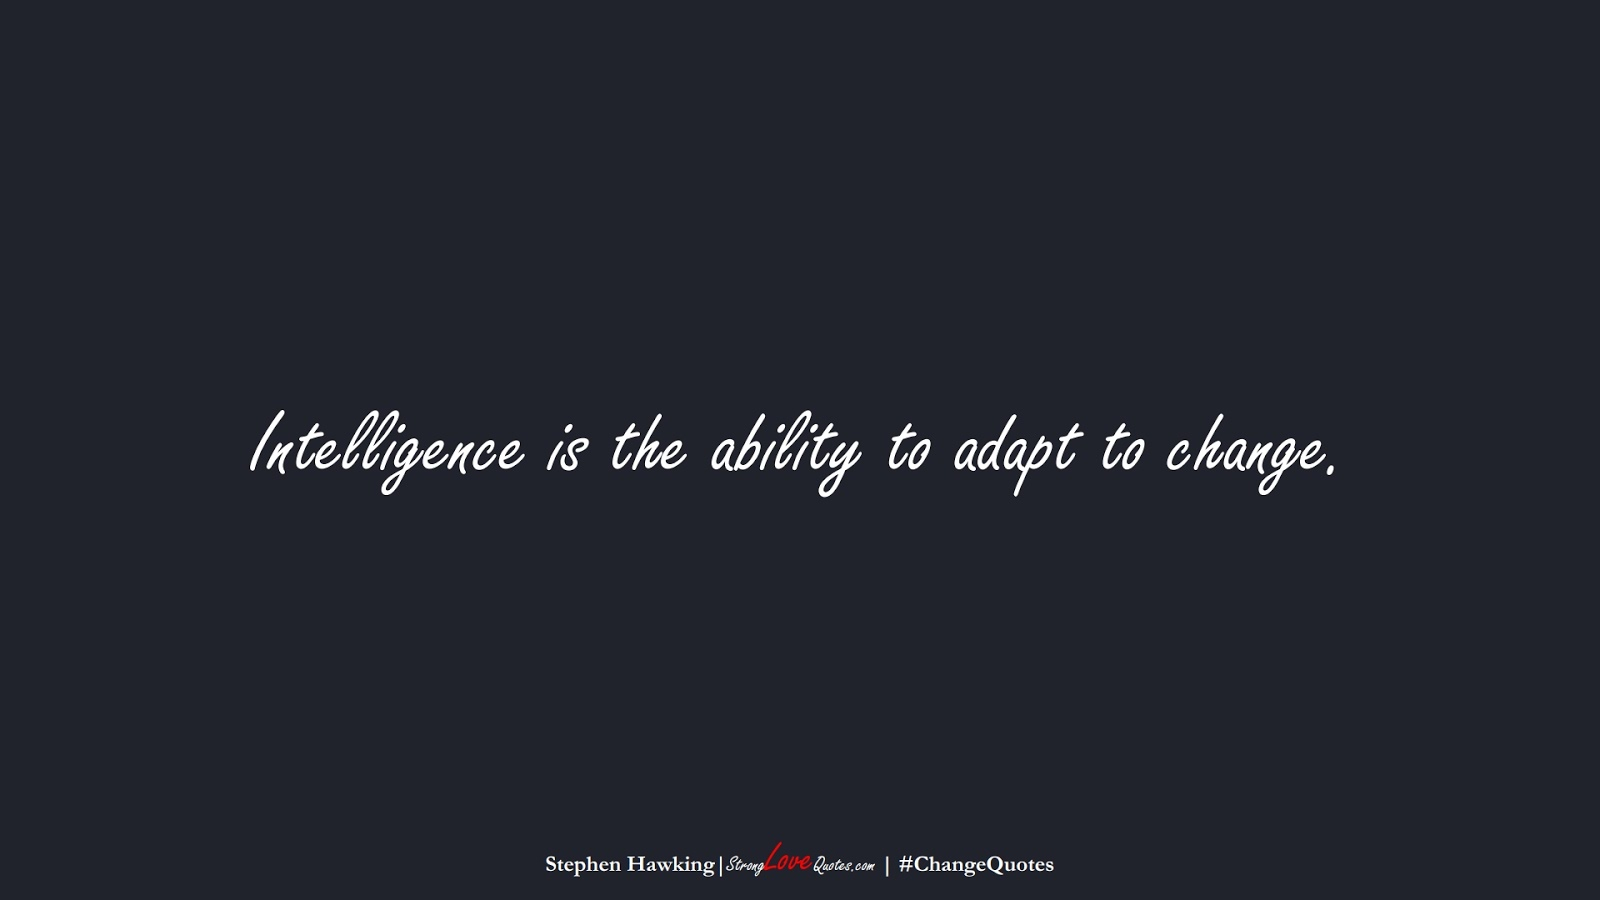 Intelligence is the ability to adapt to change. (Stephen Hawking);  #ChangeQuotes